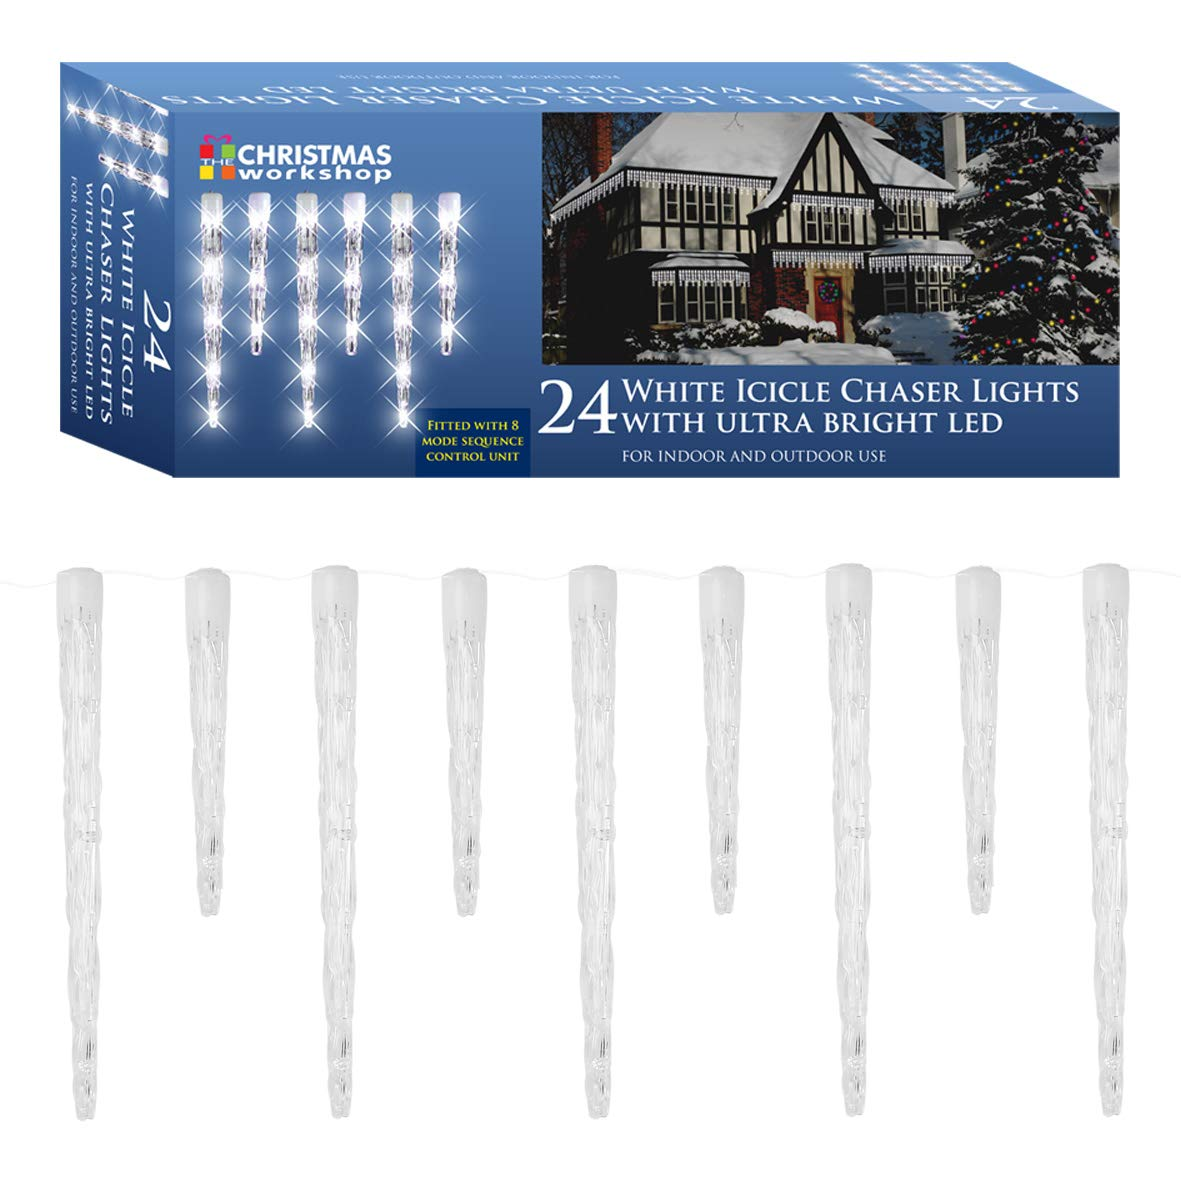 The Christmas Workshop 24 LED Icicle Chaser String Lights, Bright ...